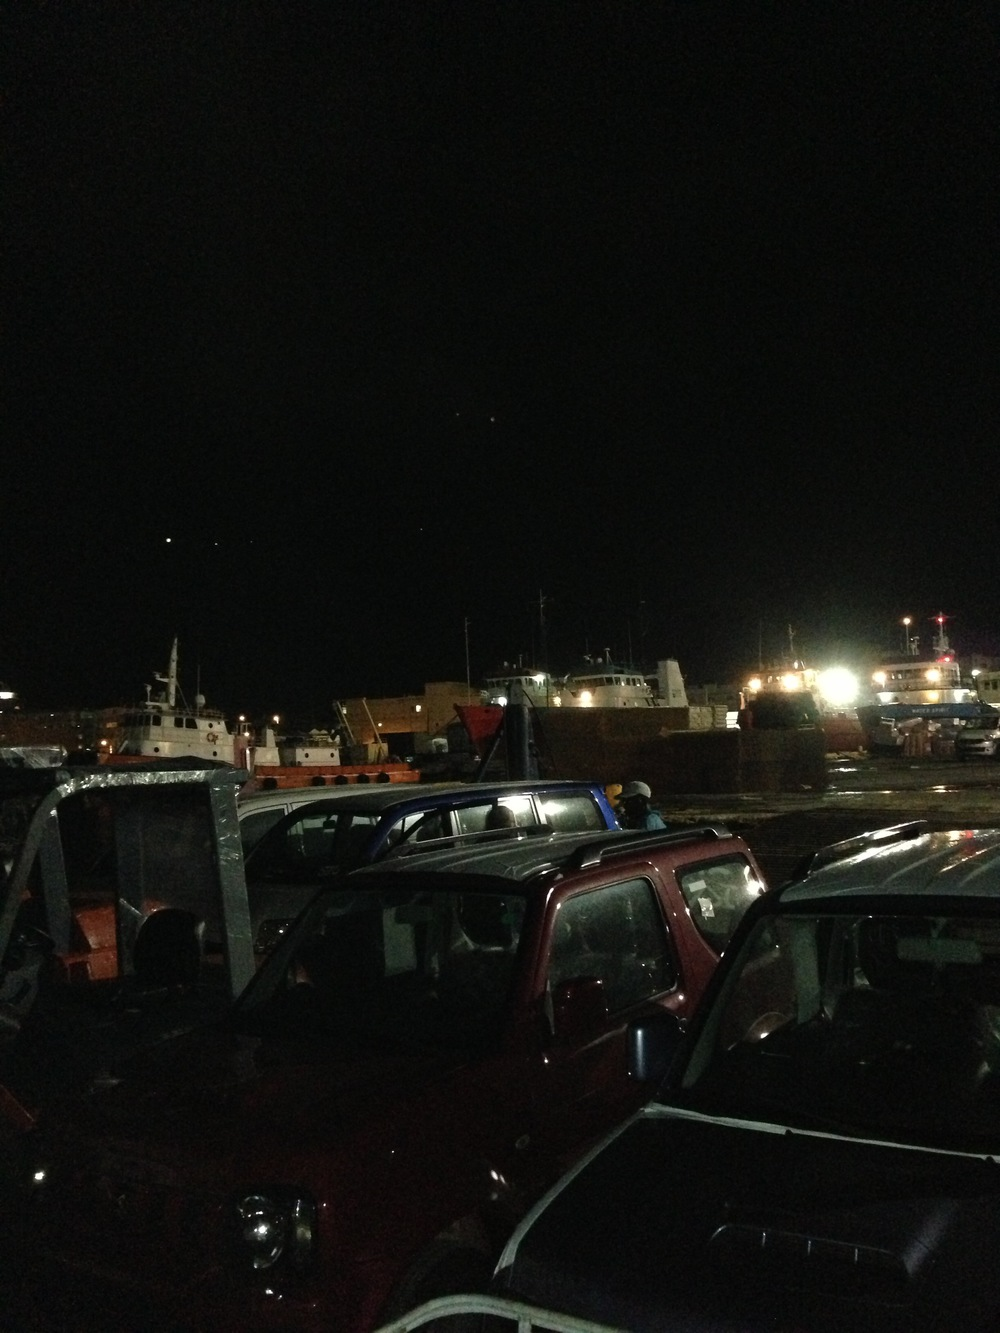 Cars loaded on deck for overnight export to Tortola